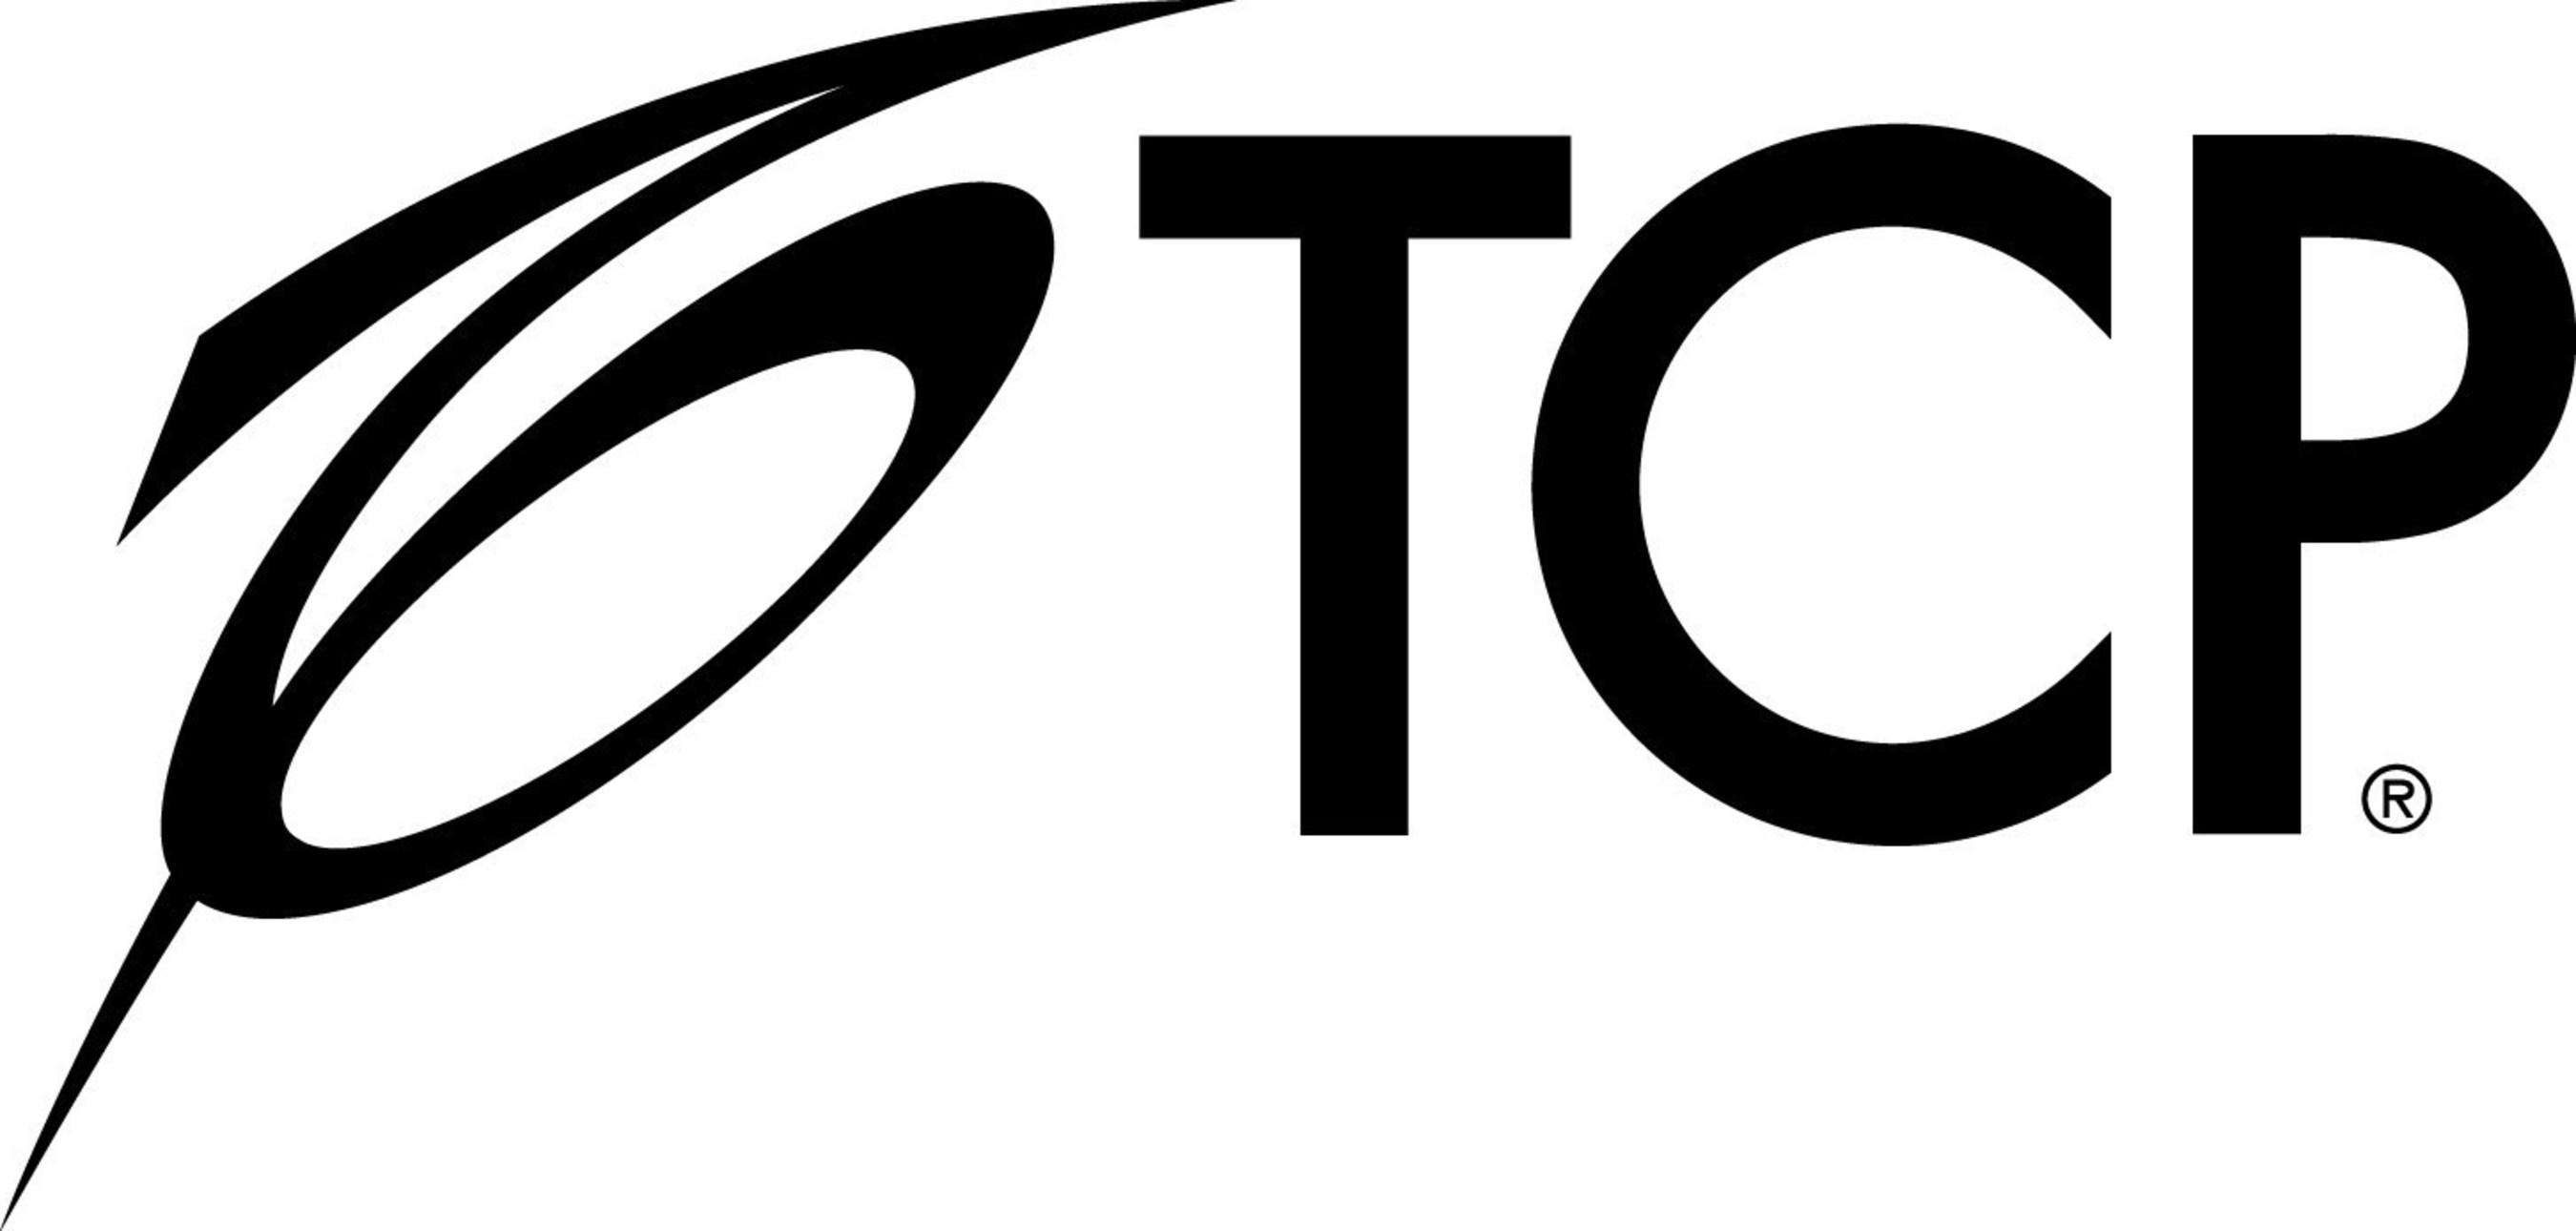 TCP Announces K.R. 'Kaj' den Daas as New CEO